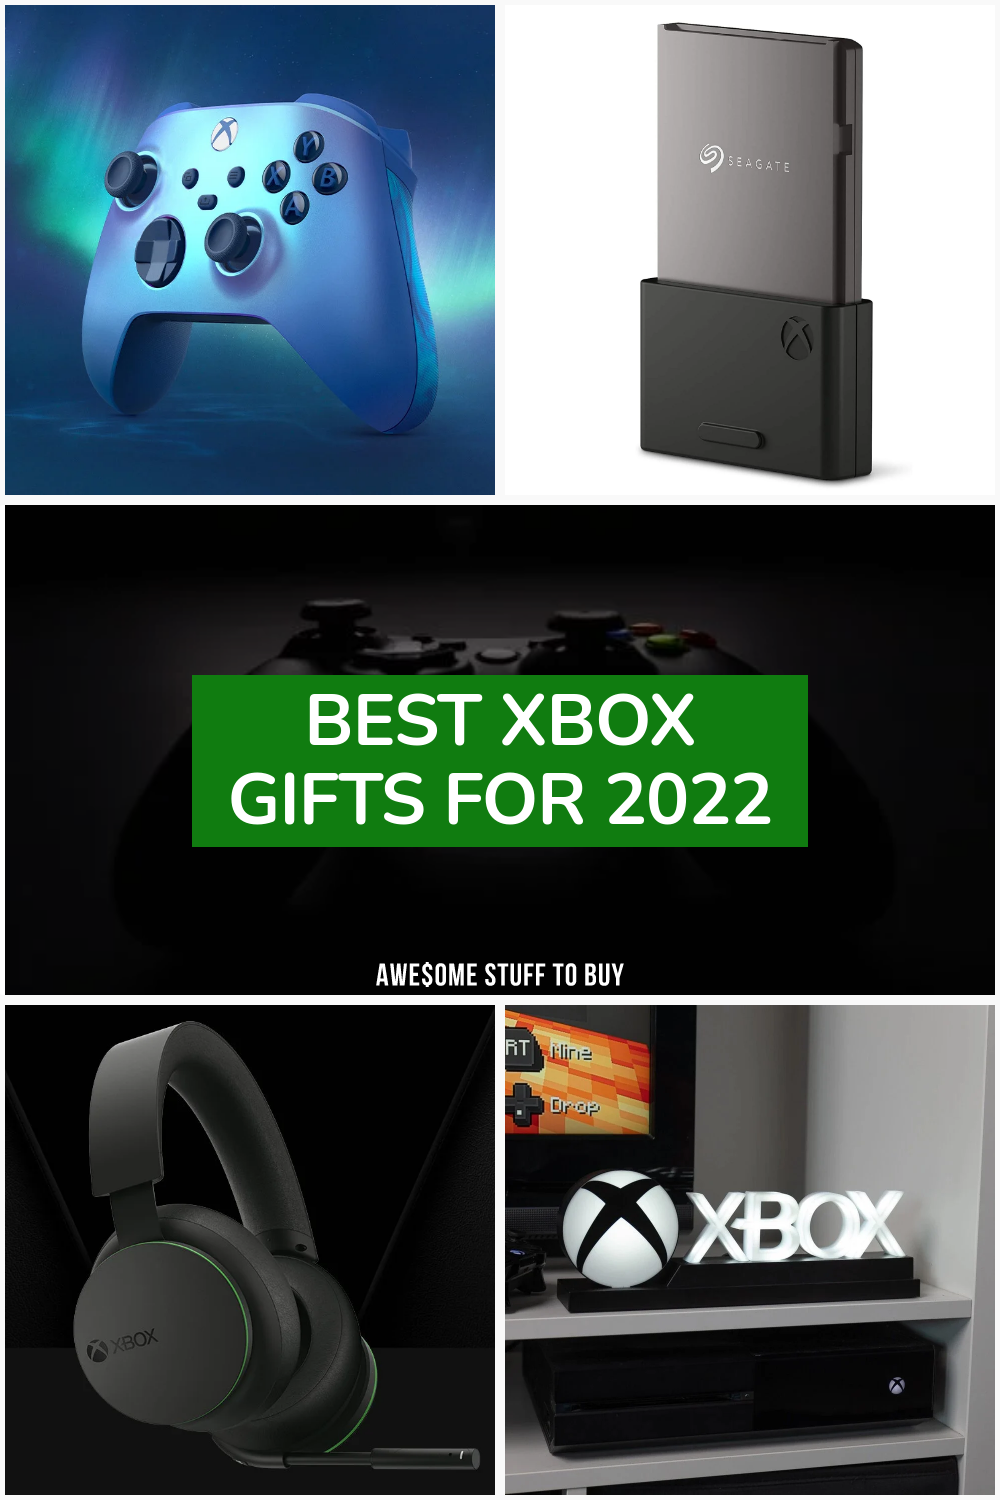 Xbox Gifts // Awesome Stuff to Buy